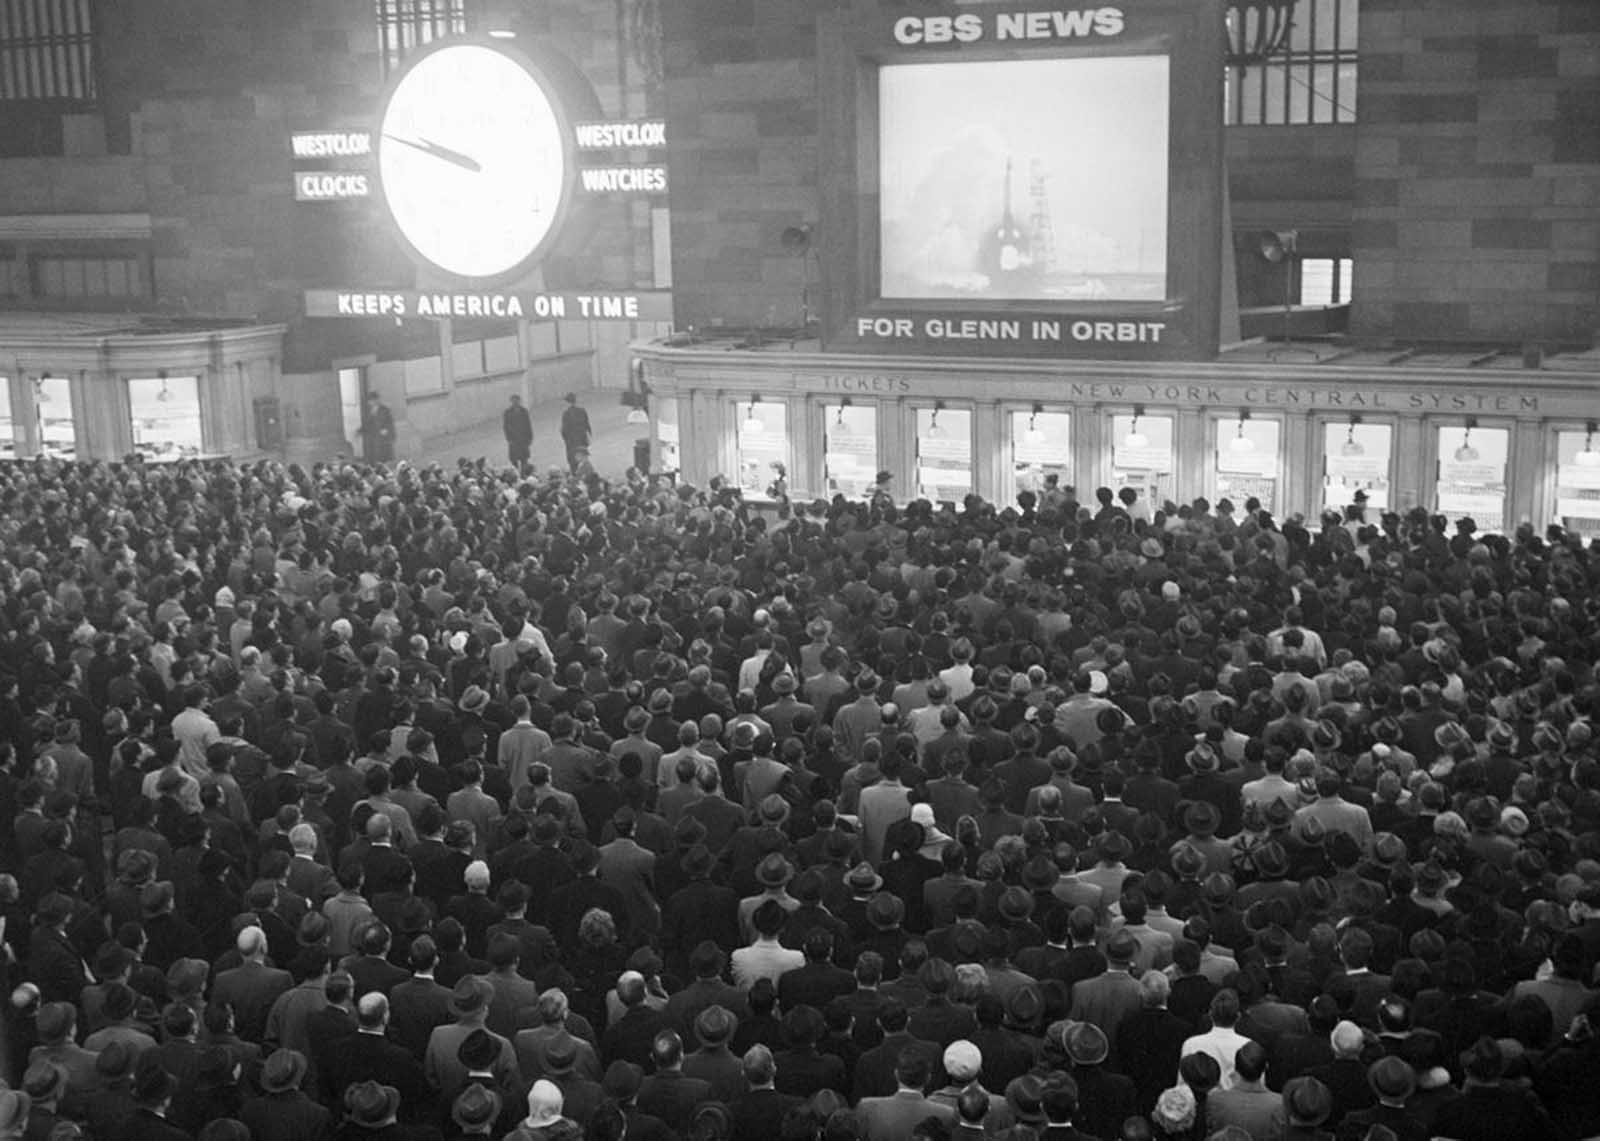 Some 5,000 workers watch the launching of astronaut John H, Glenn Jr. into orbit around the world on a huge television screen in Grand Central Terminal, on February 20, 1962.